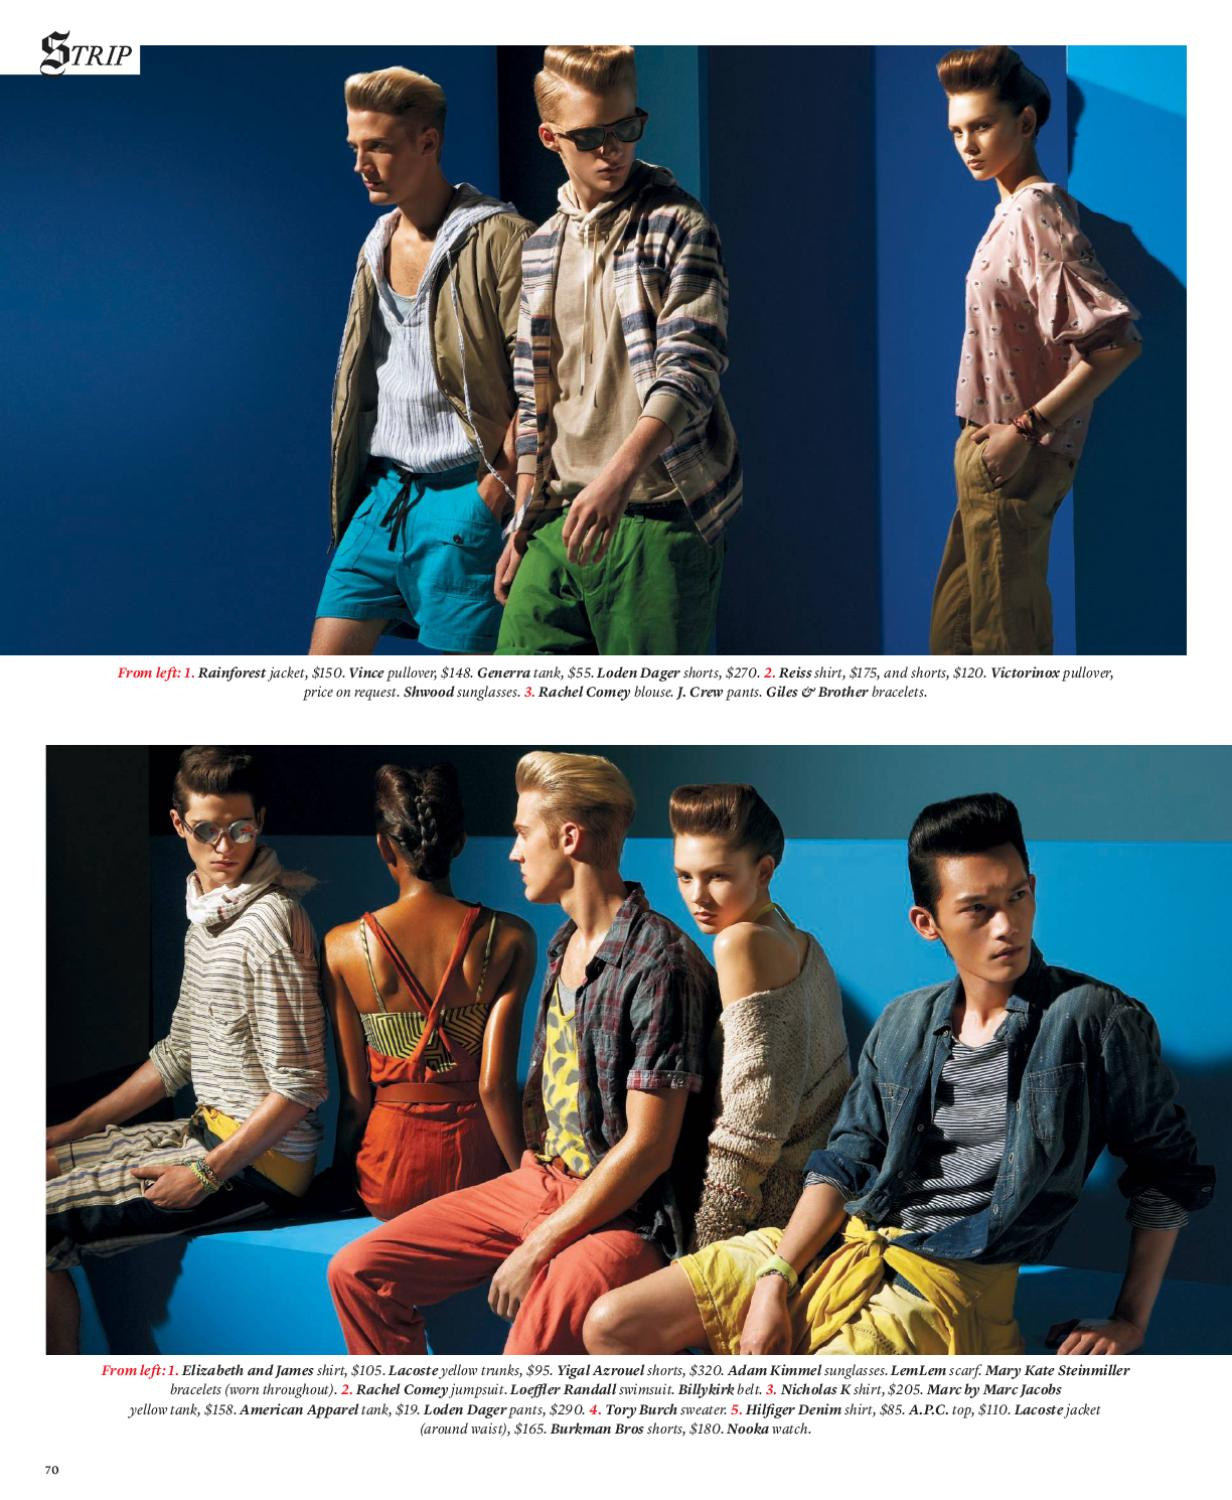 The New York Times T Style Men's Fashion Spring 2010